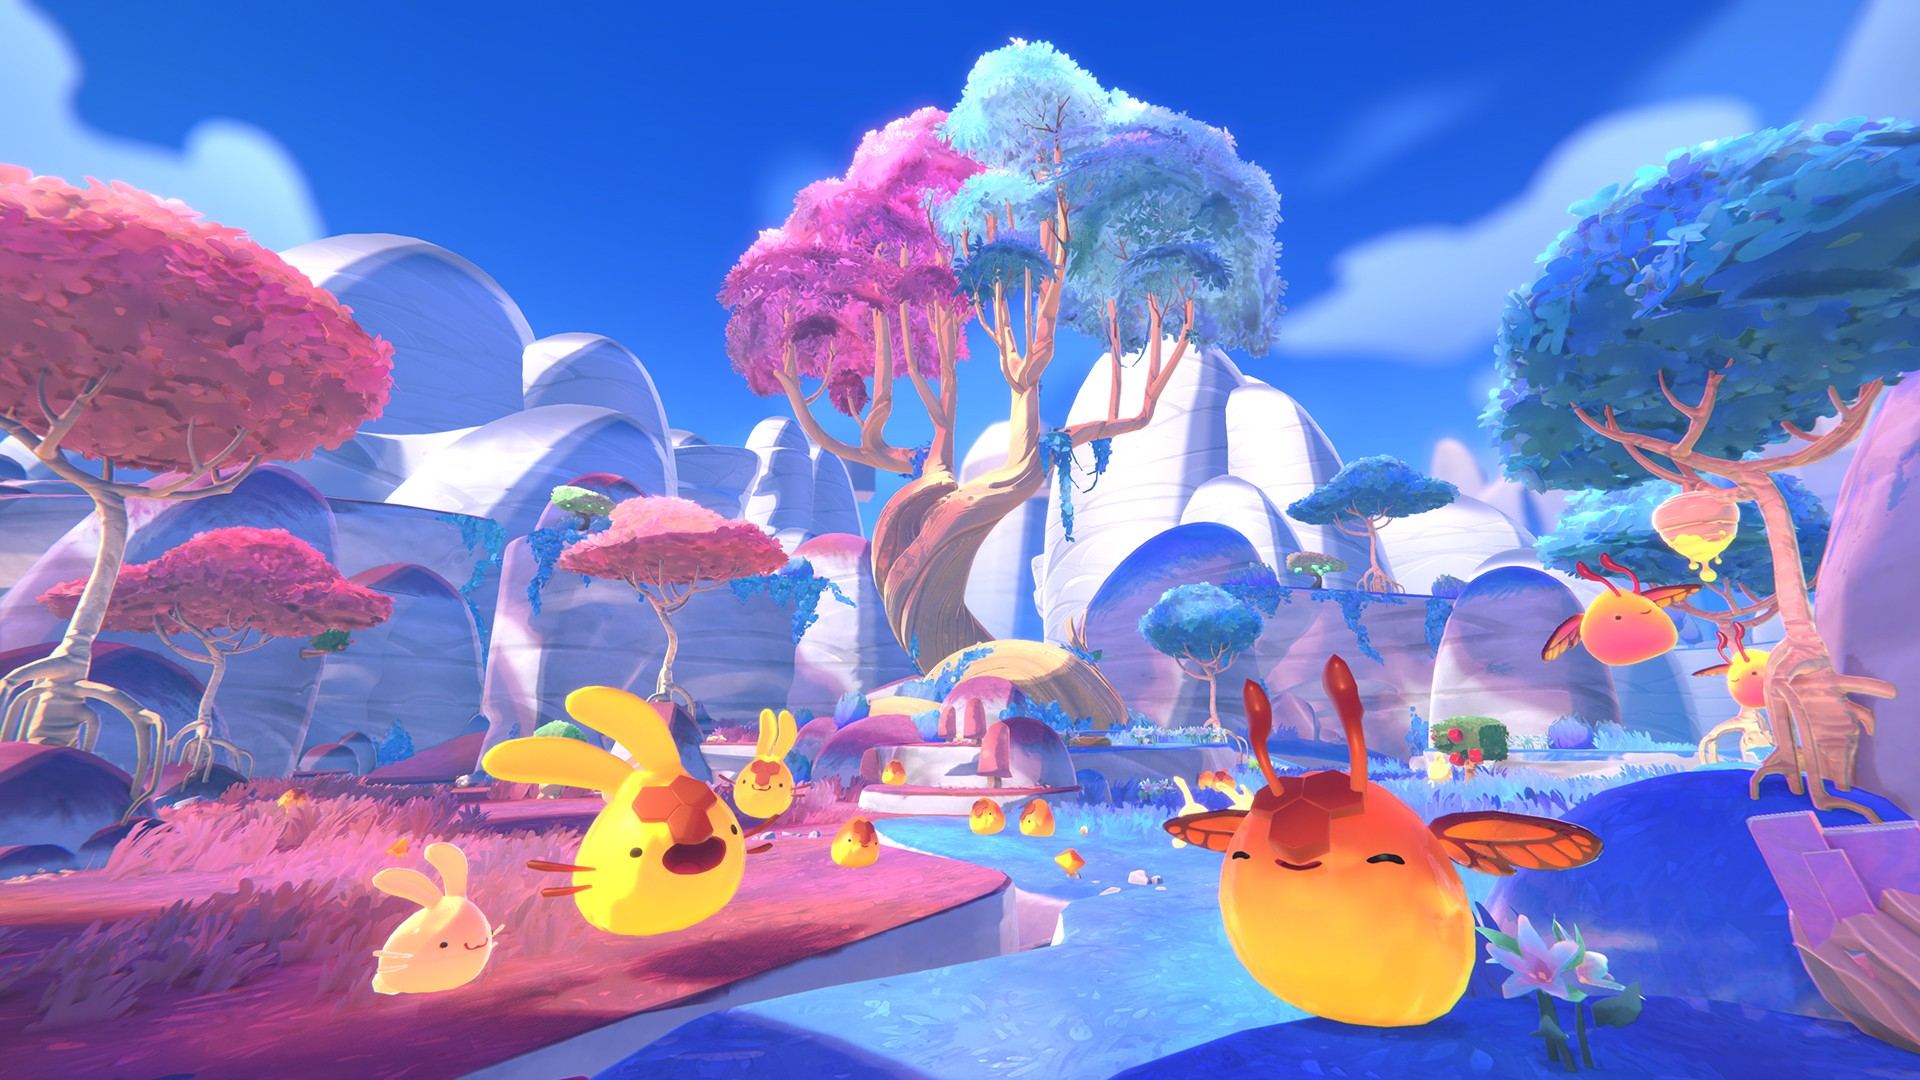 Video For Slime Rancher 2 Returns for a Wiggly New Adventure